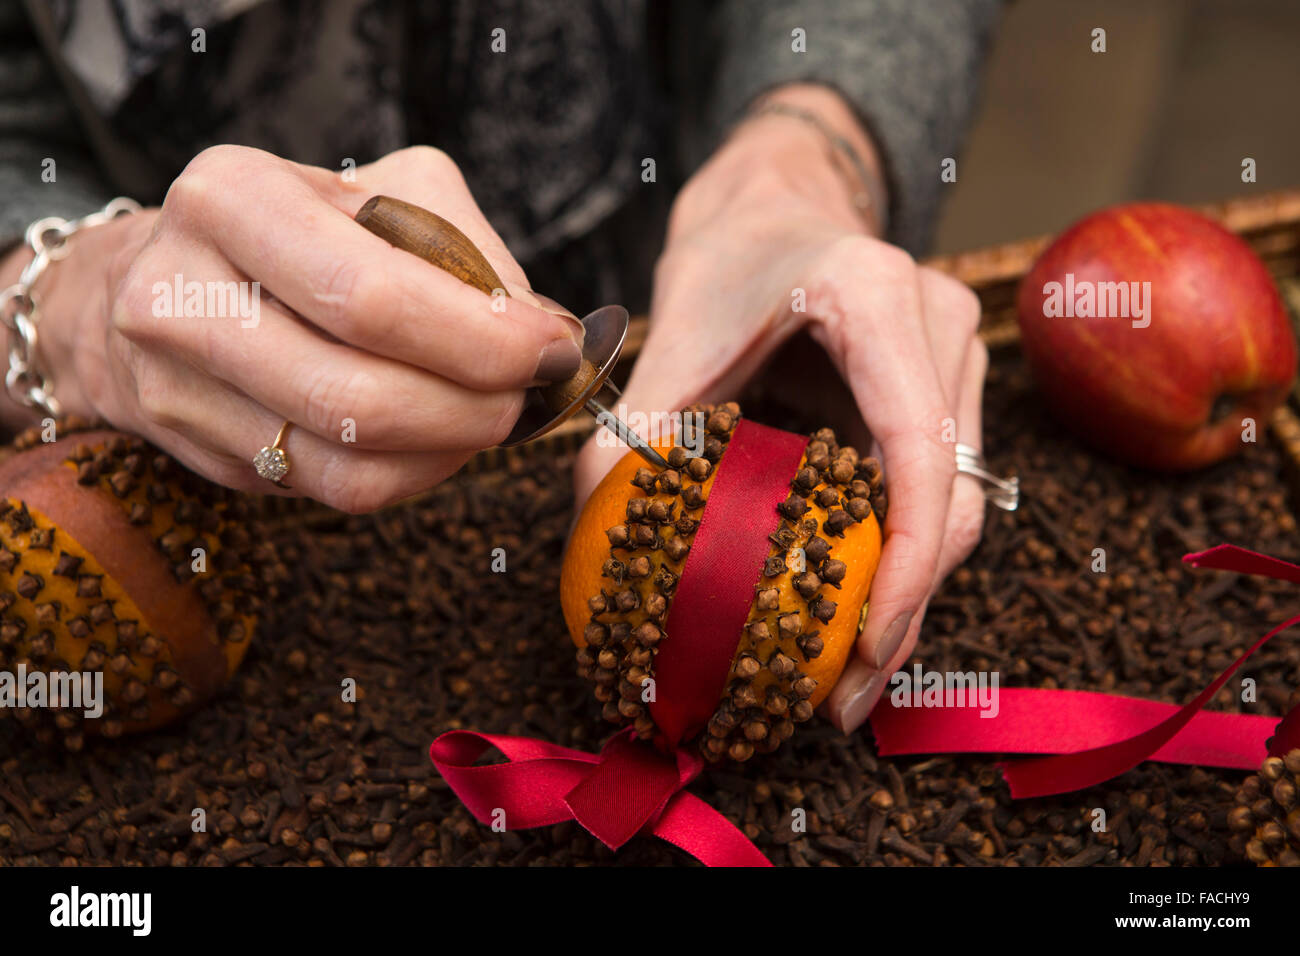 UK, England, Cheshire, Knutsford, Tatton Hall, Kitchen at Christmas, hands of woman inserting cloves into orange - Stock Image